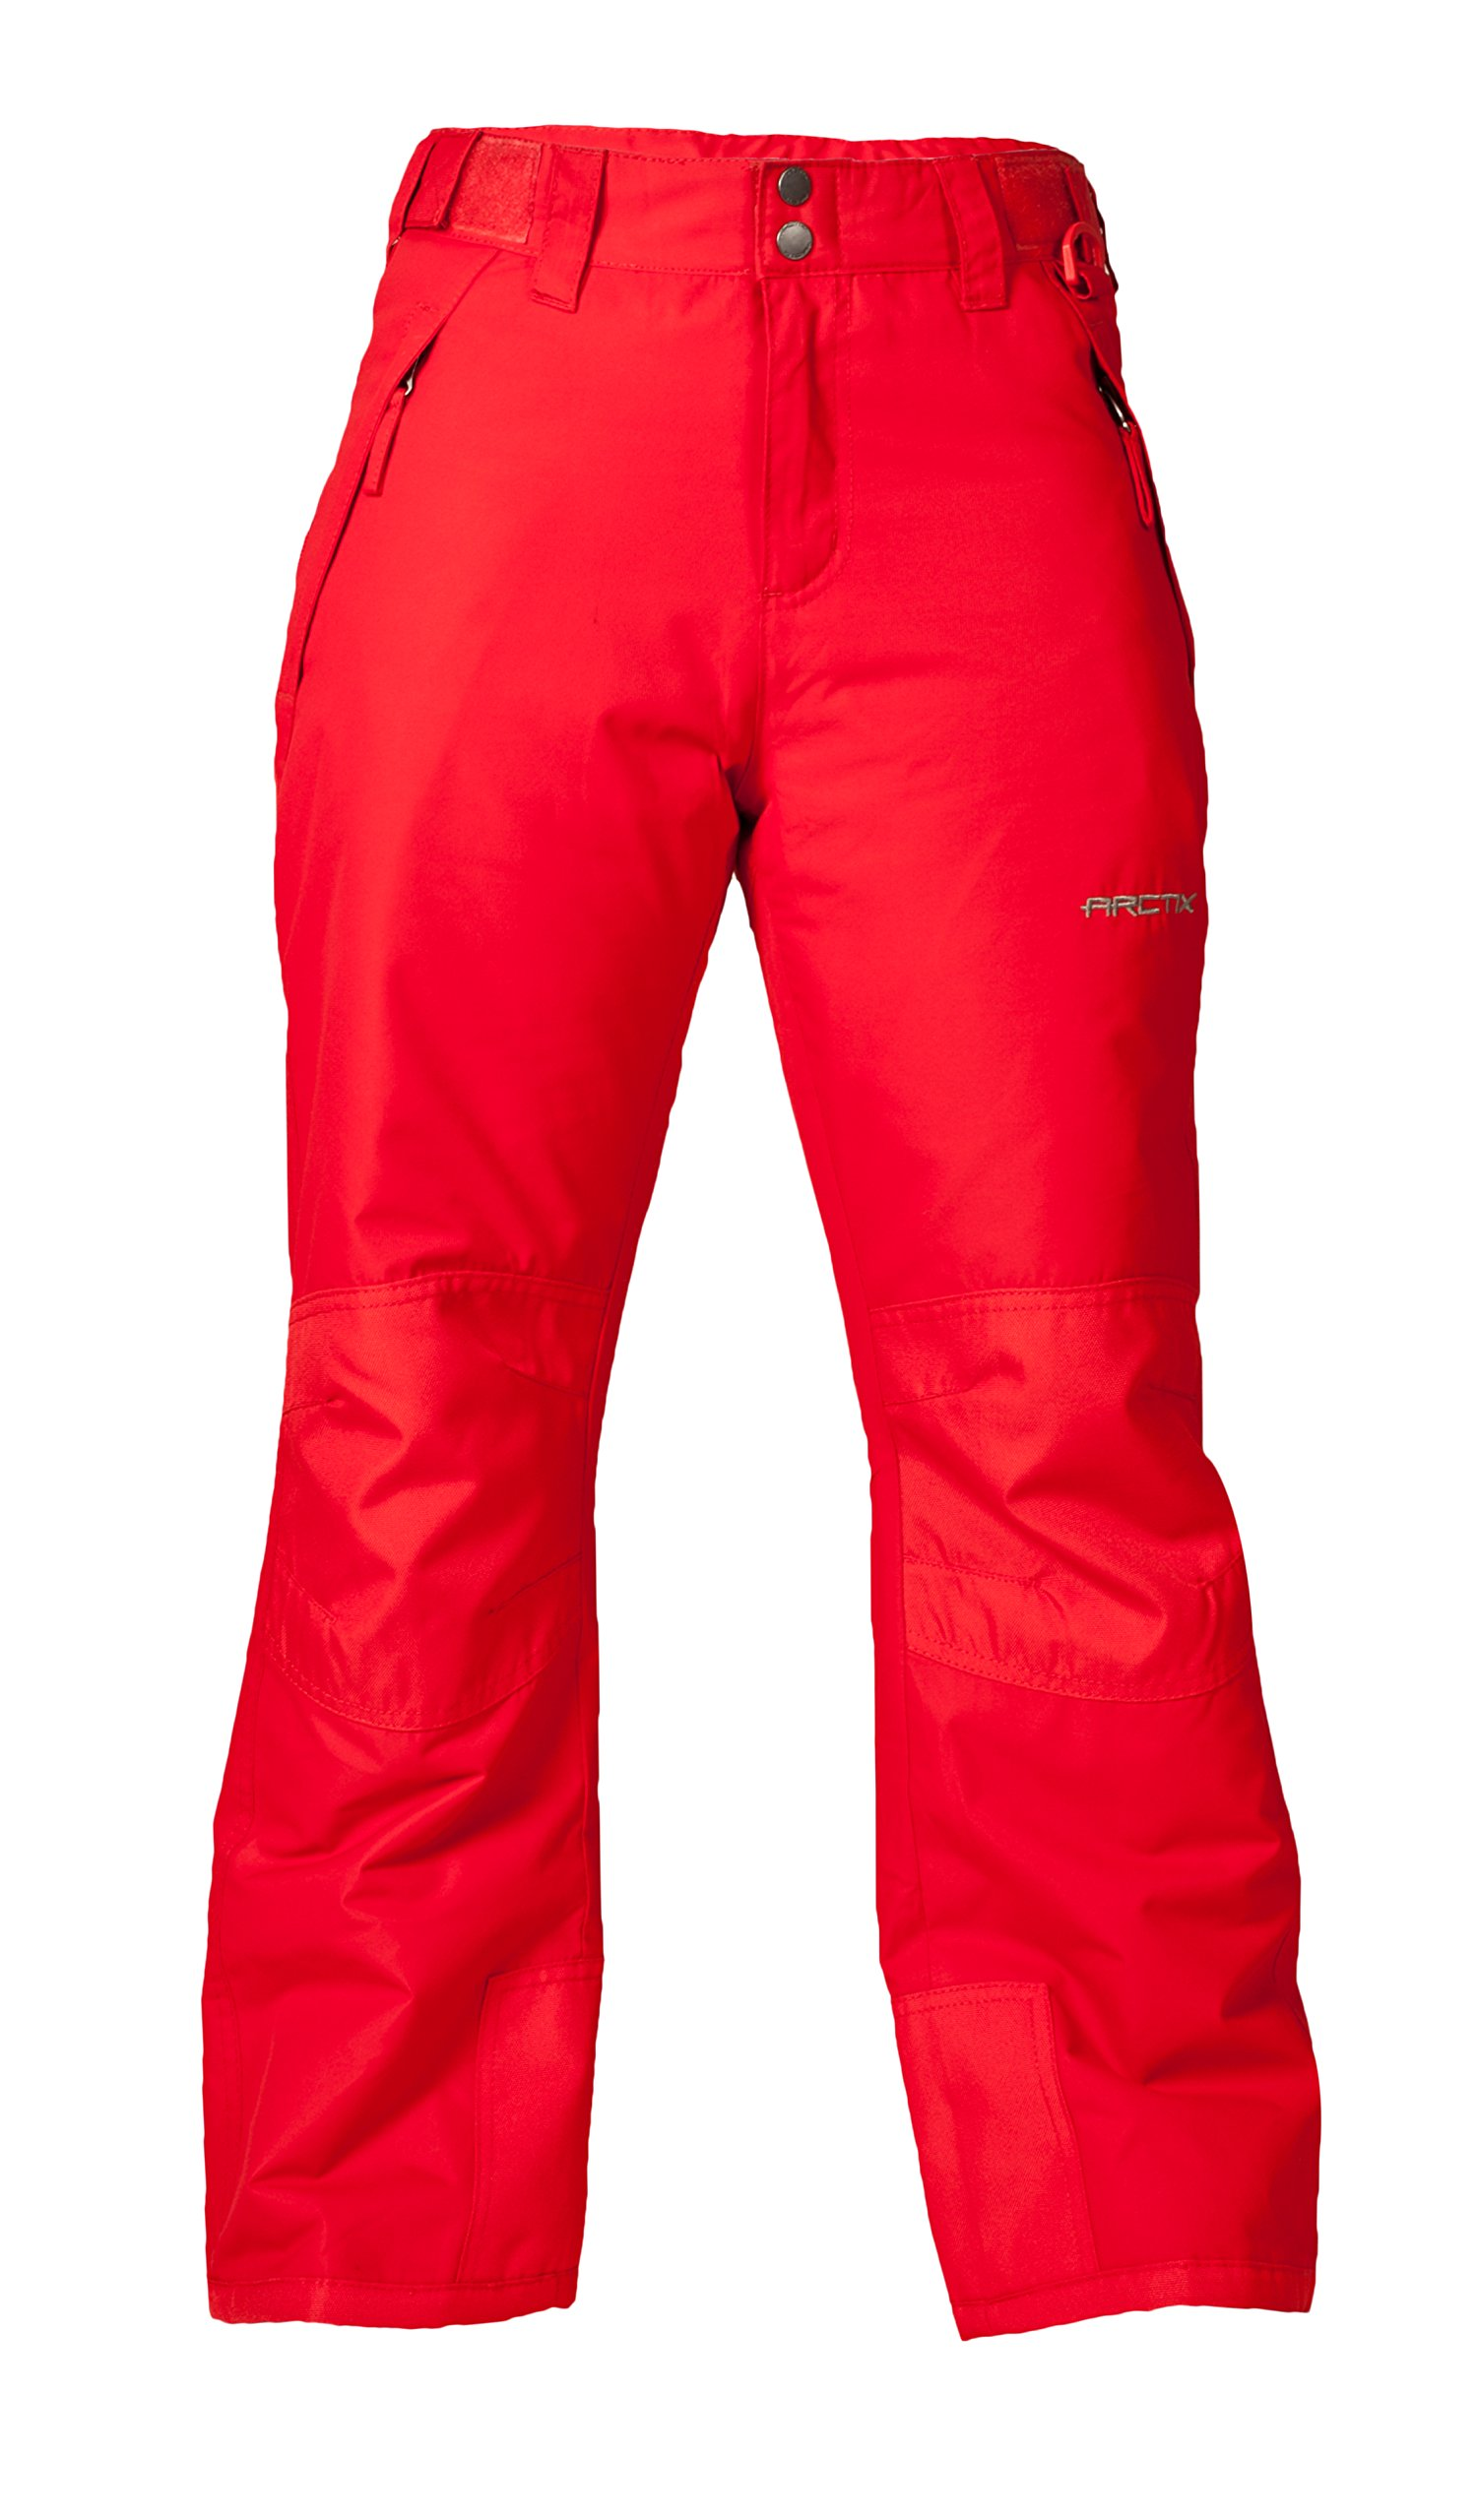 Arctix Youth Snow Pants with Reinforced Knees and Seat, Formula Red, X-Small